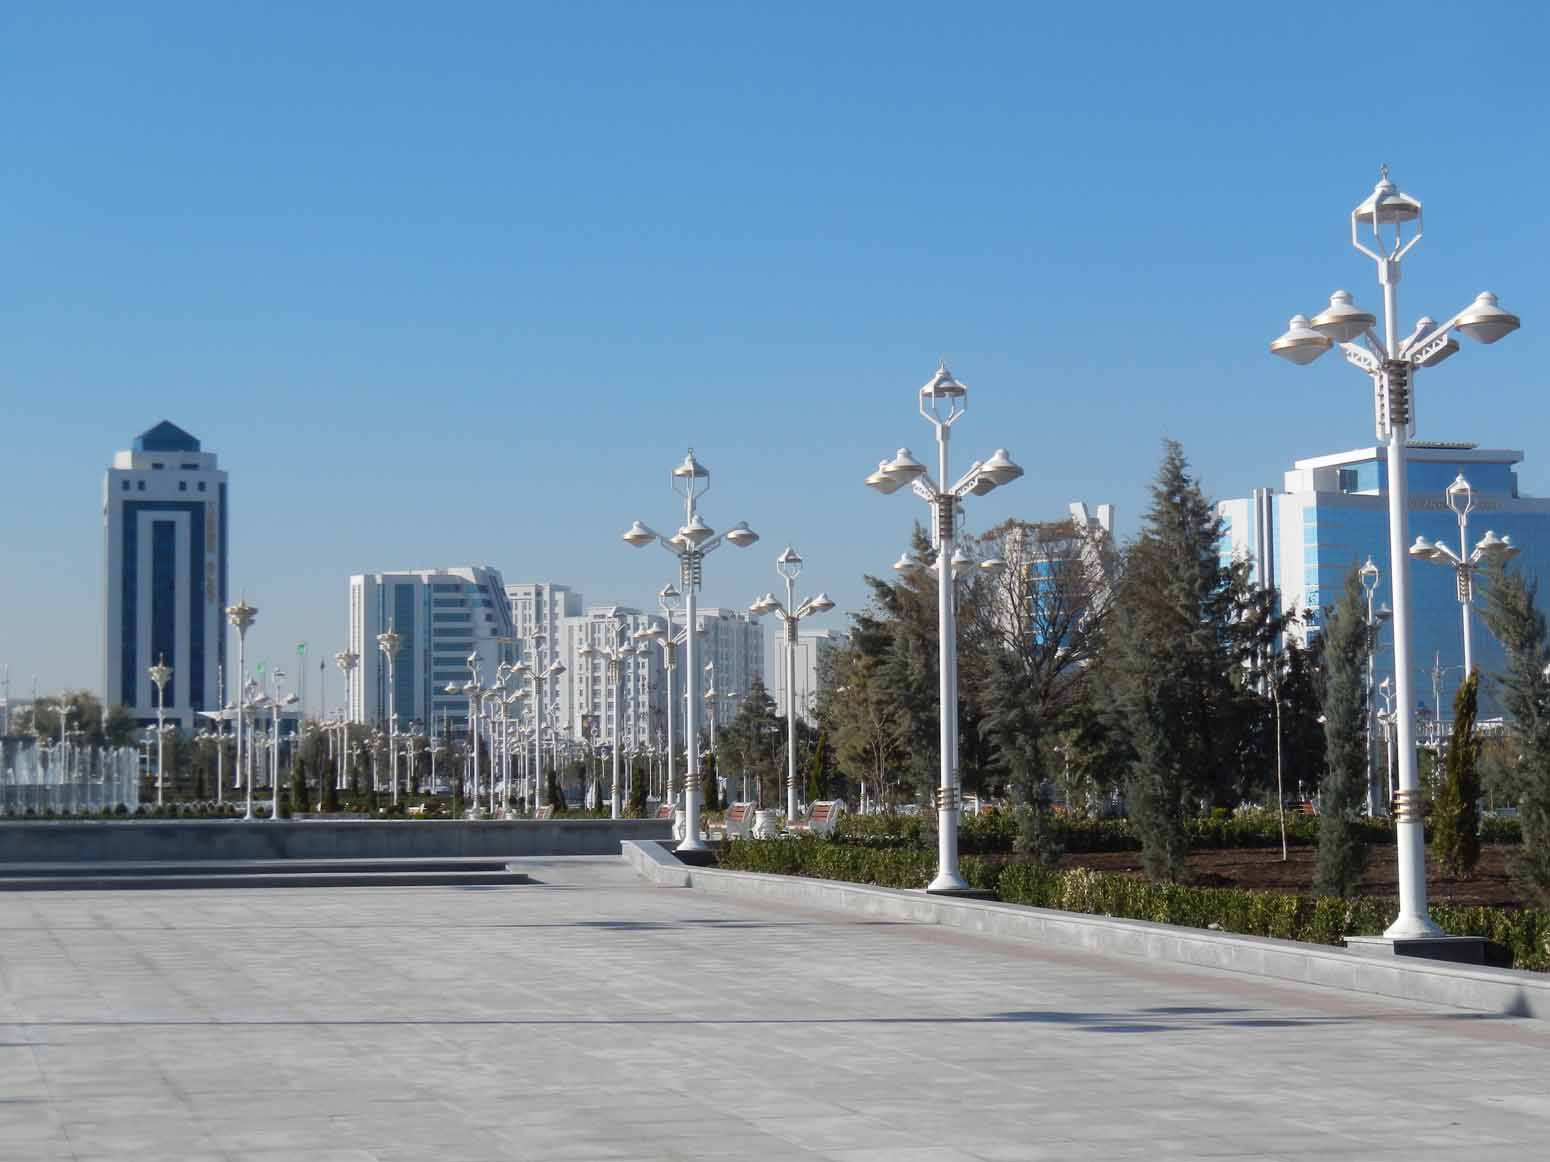 Turkmenistan runs out of food and money